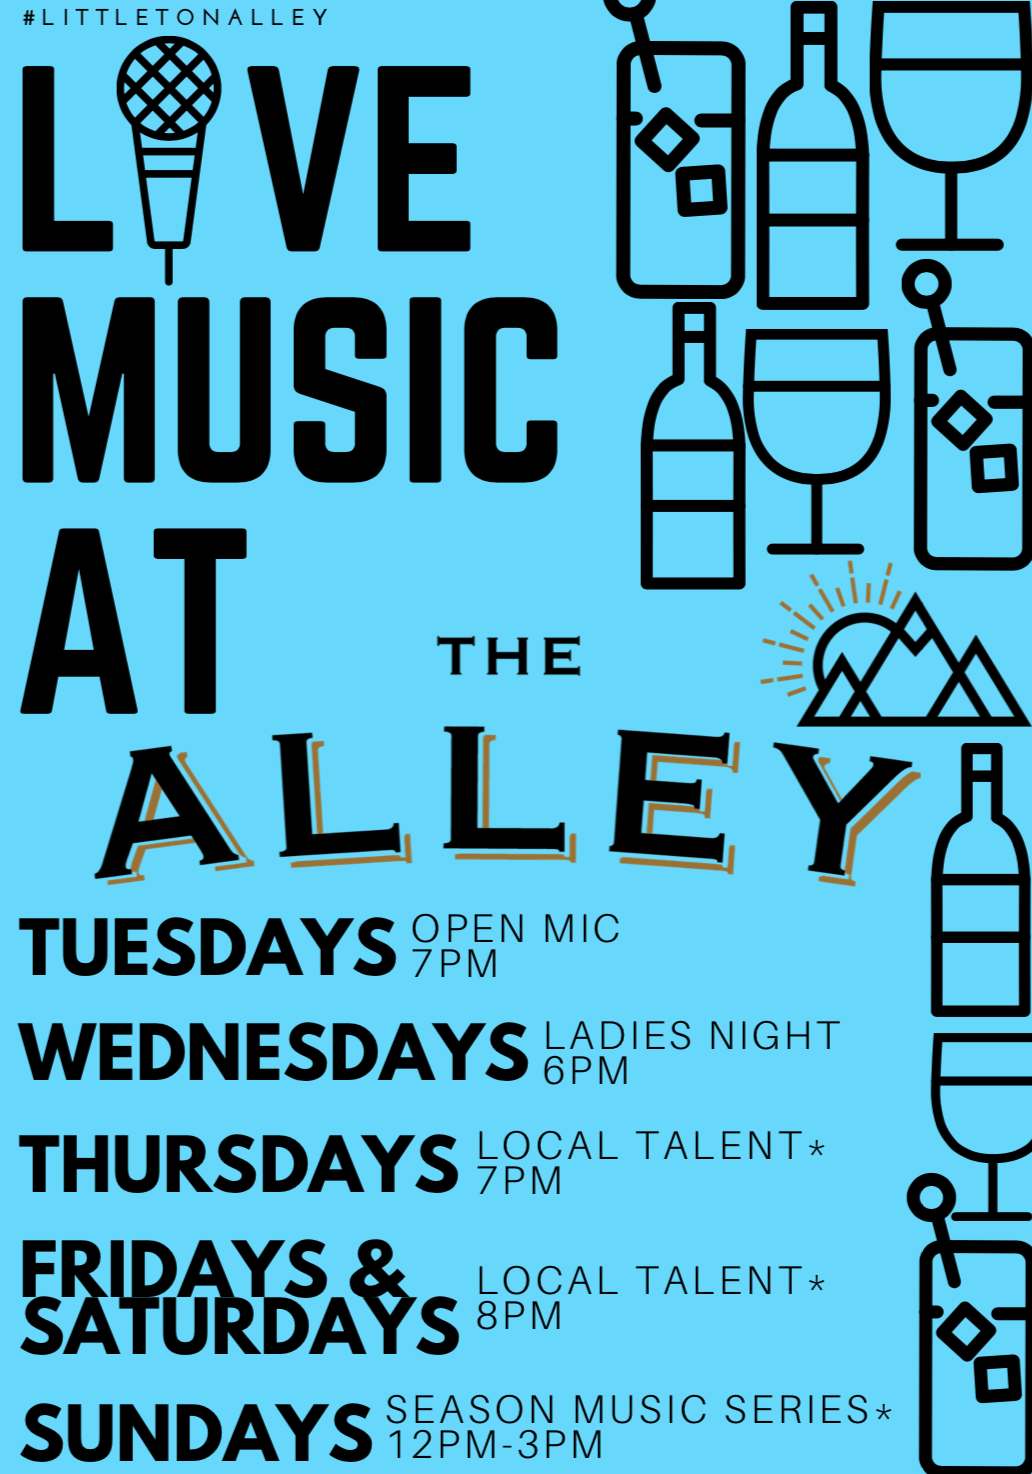 Live music at the Alley